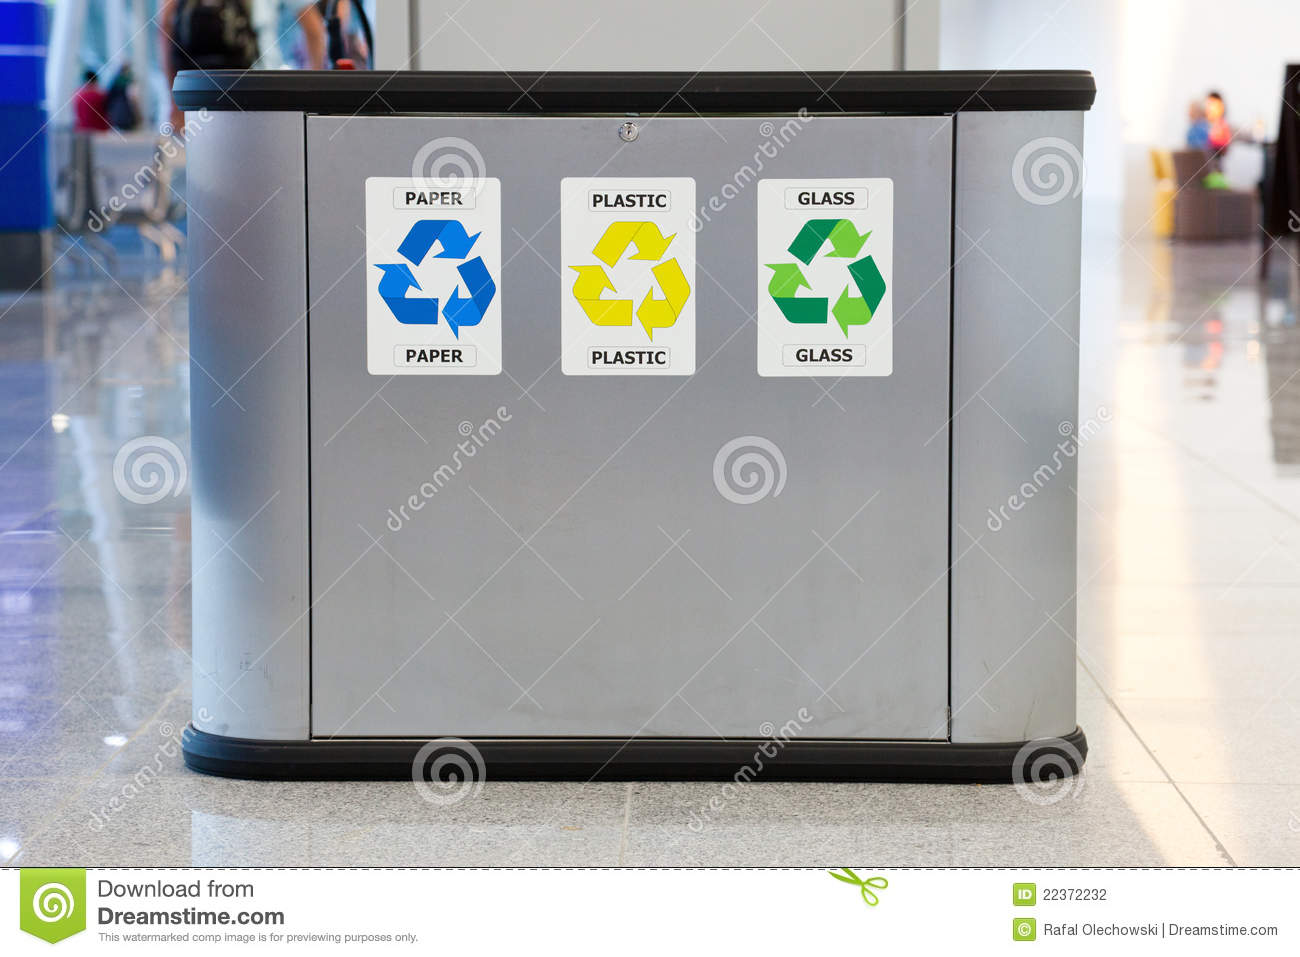 ReLoop: What is Source Separated Recycling?